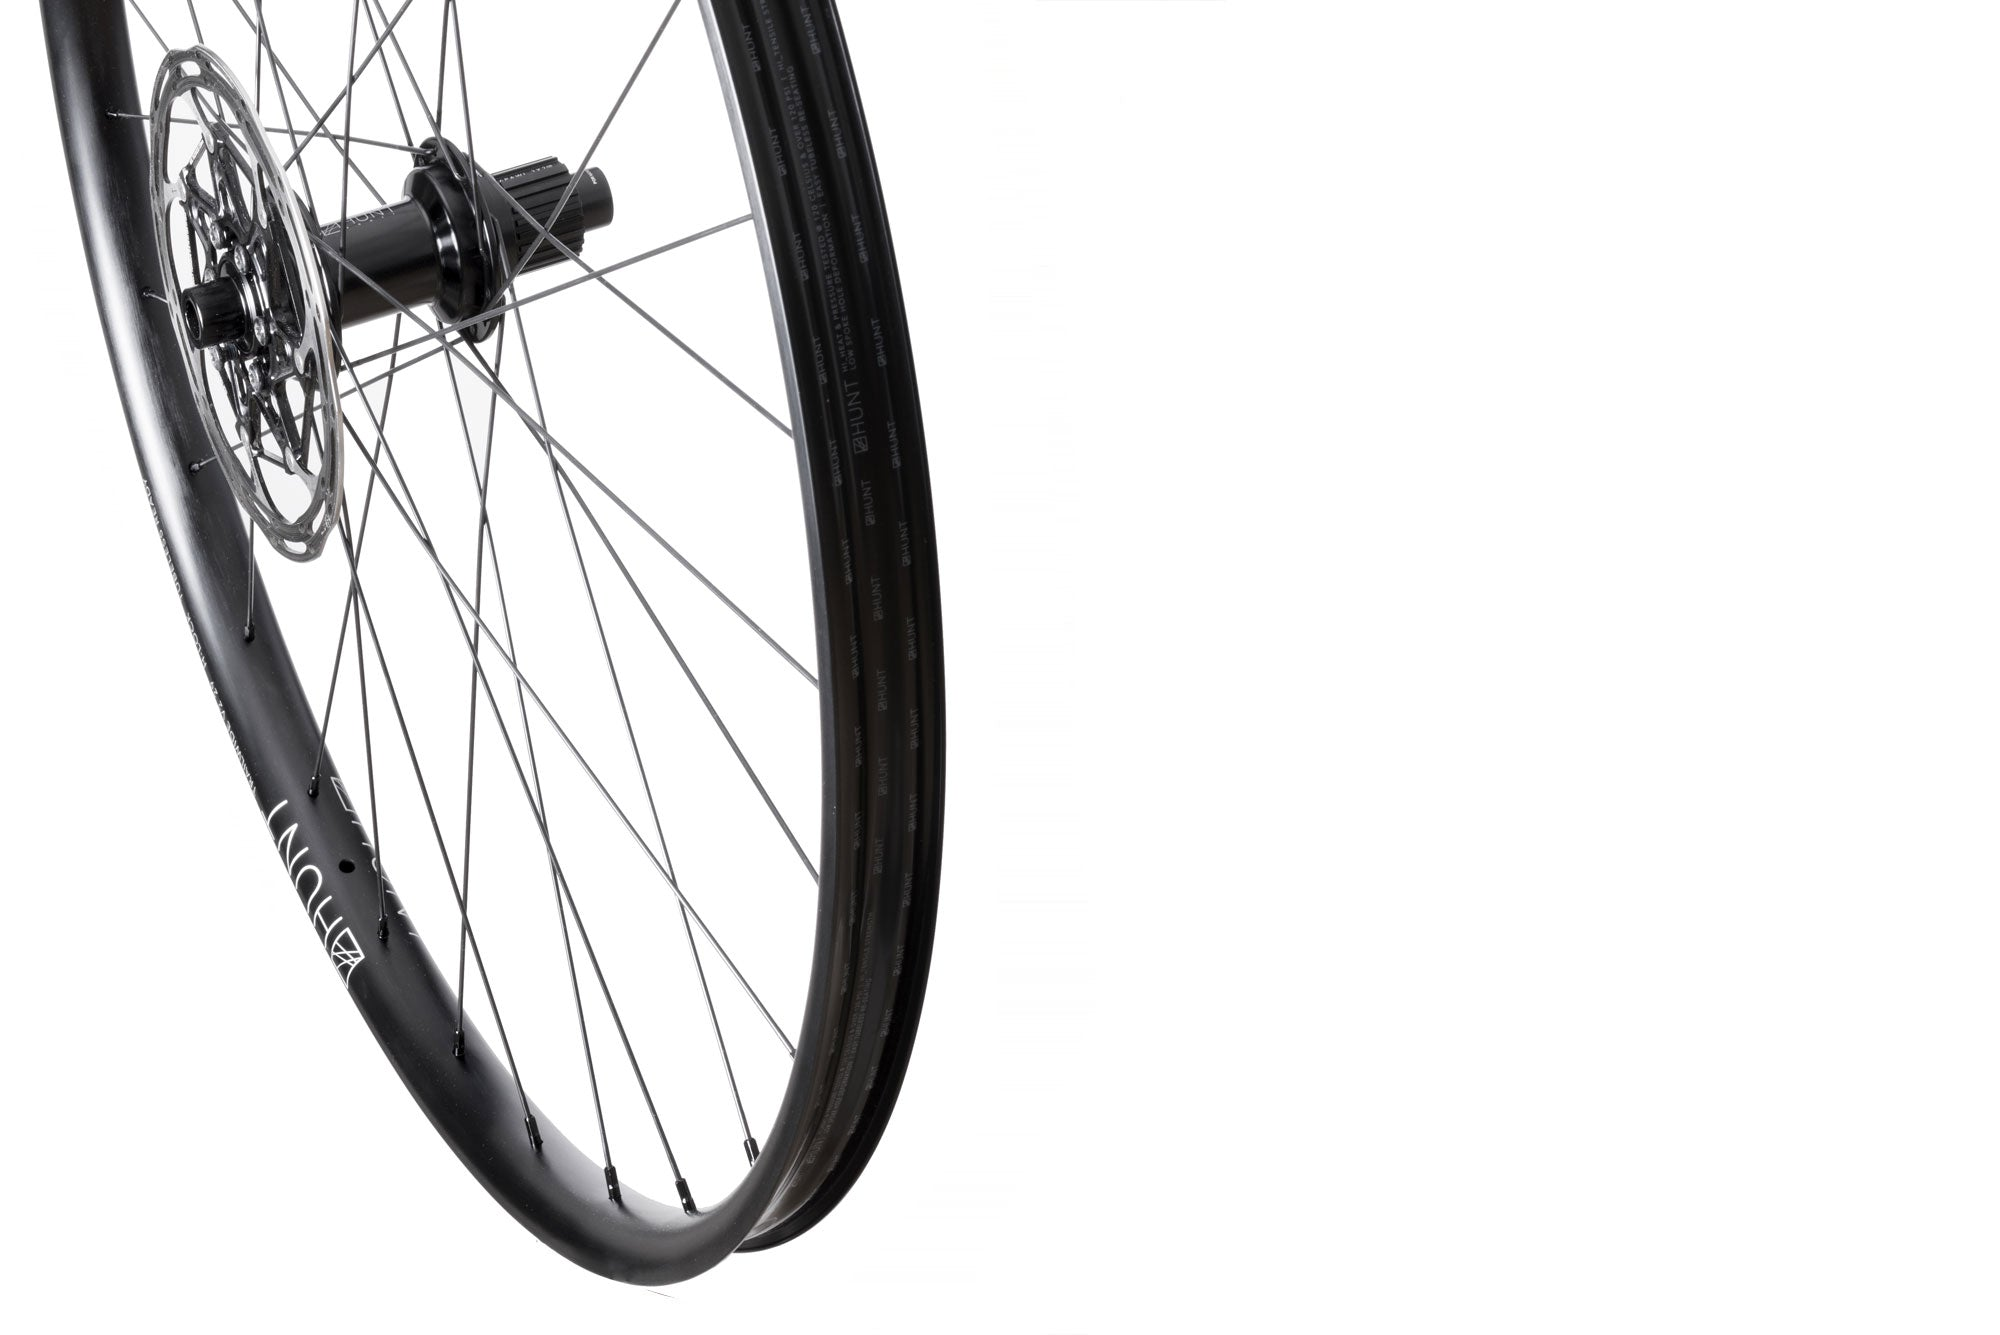 HUNT Trail Wide MTB Wheelset